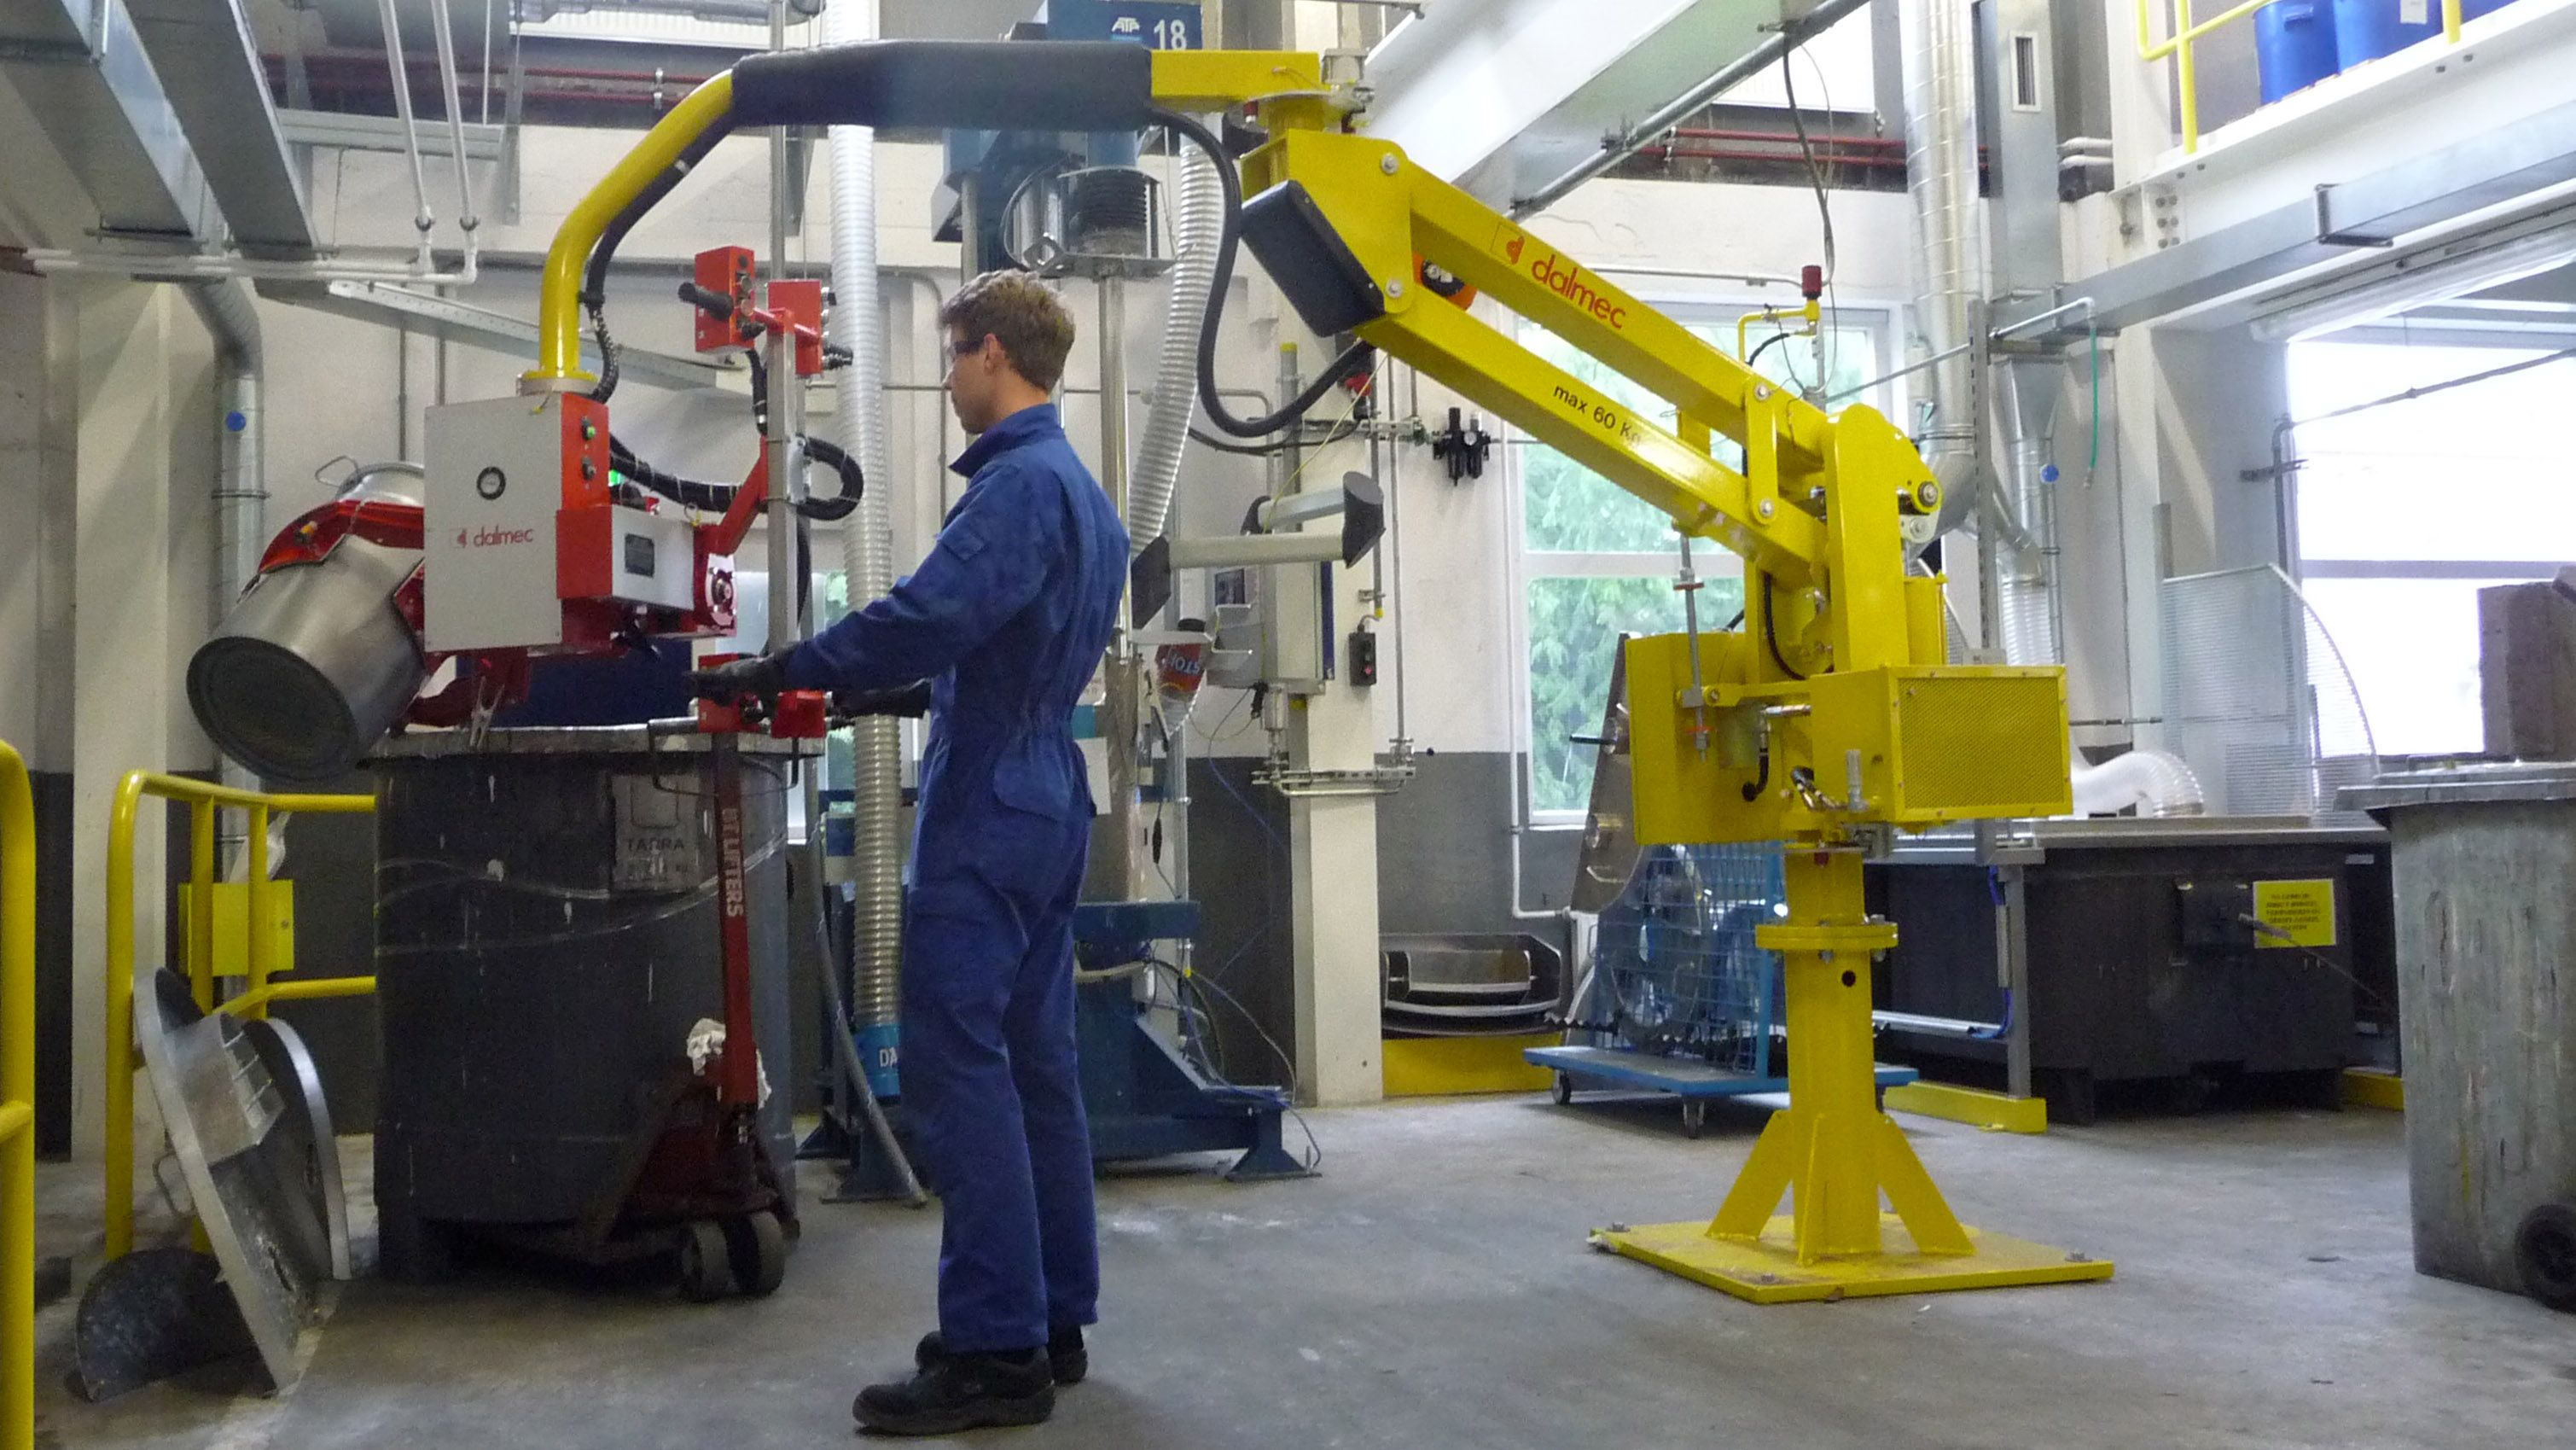 Manipulators For Lifting : Drums lifting device industrial manipulator for